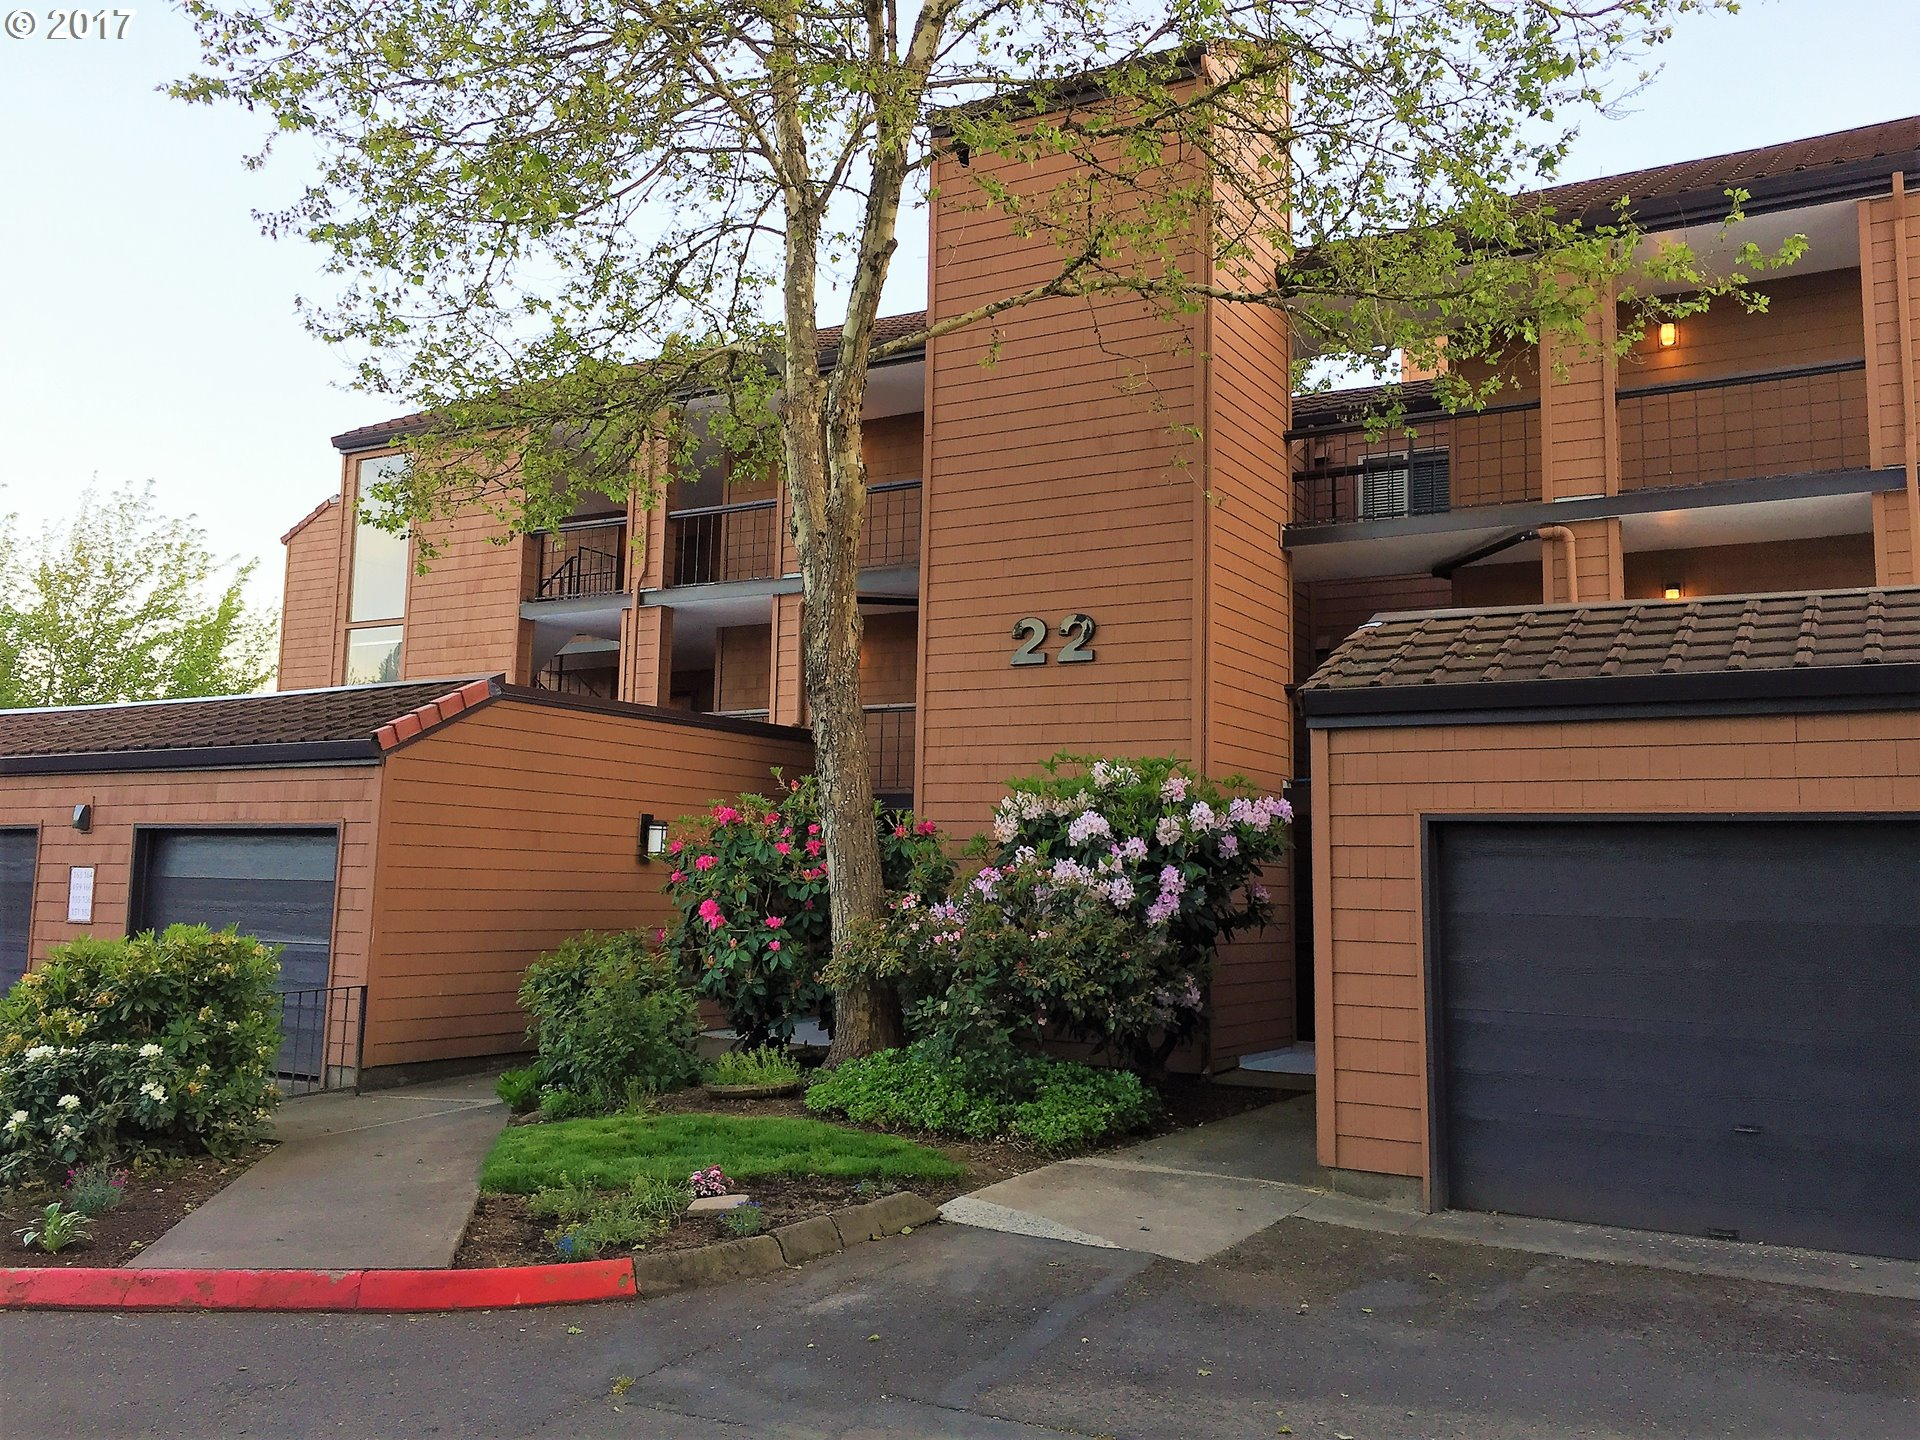 154 OSWEGO SMT Blg22, Lake Oswego, OR 97035